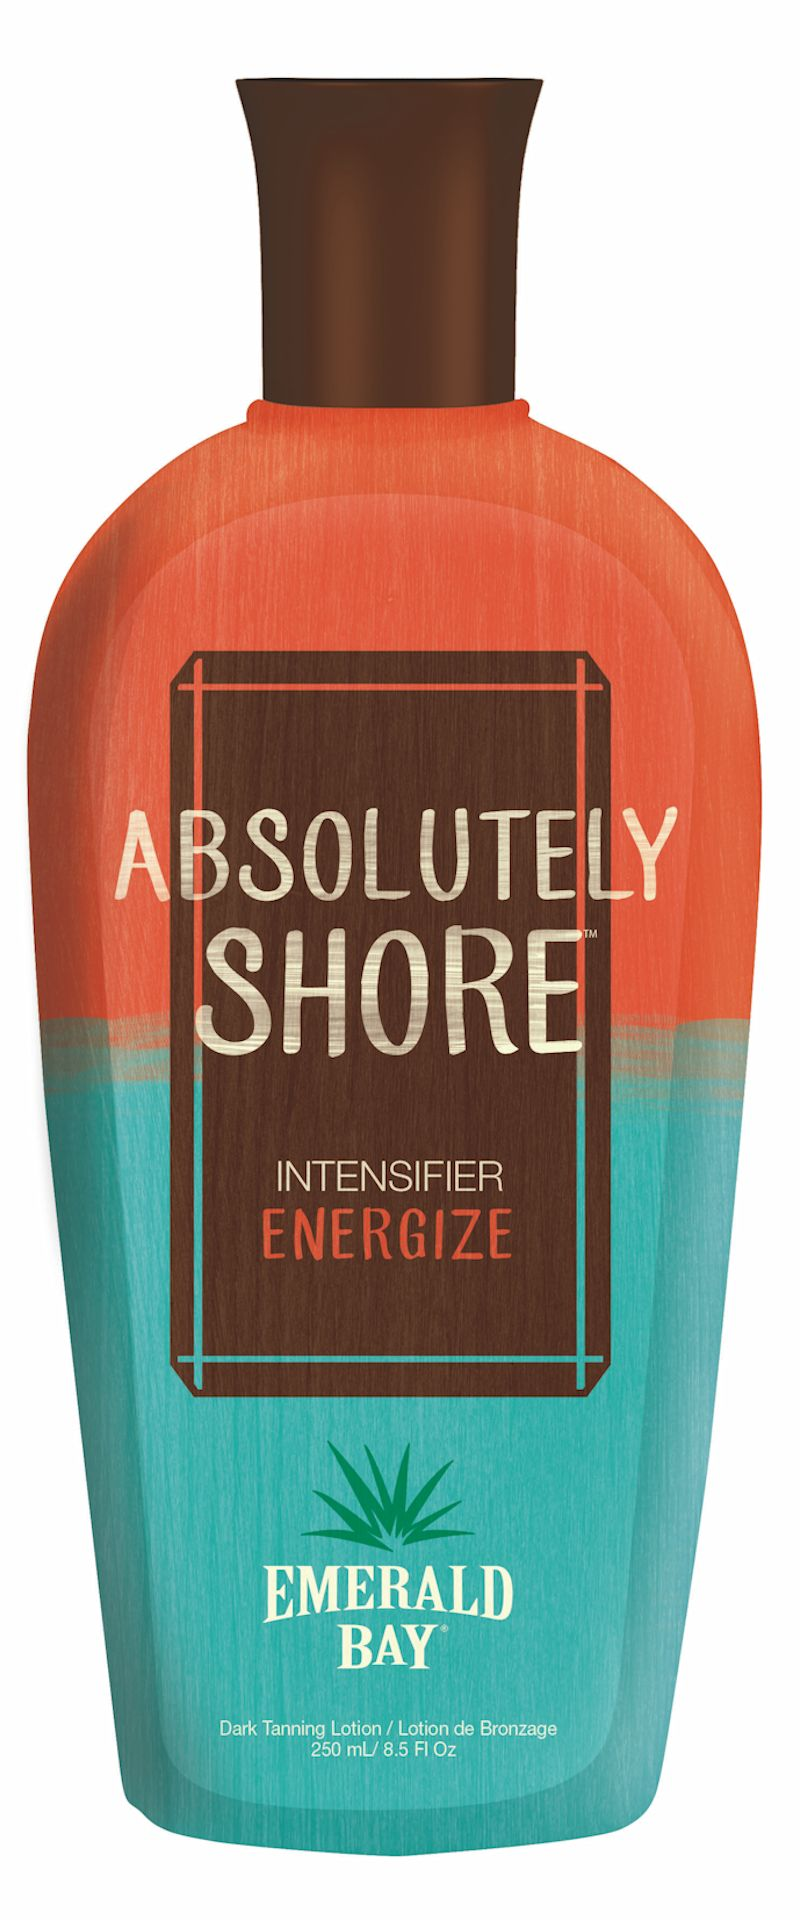 Absolutely Shore™ Intensifier